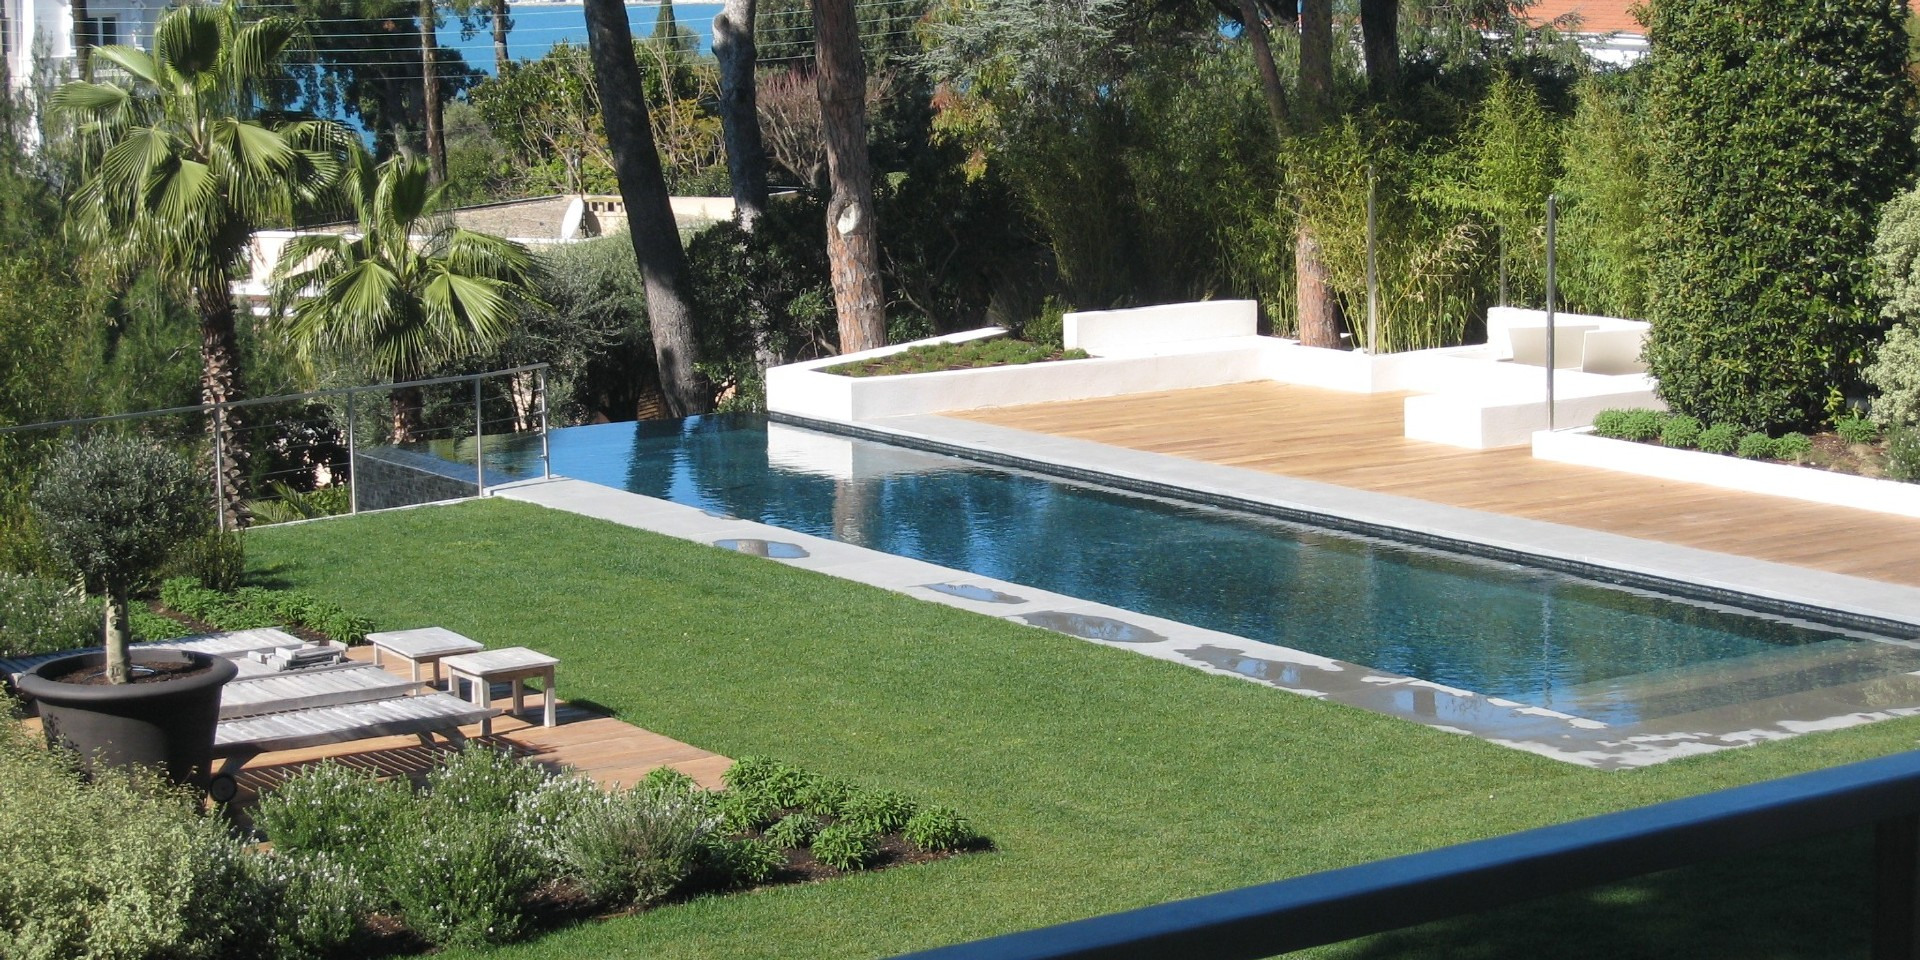 Hortus cecile chaltin architecte paysagiste 06 antibes for Paysagiste architecte jardin